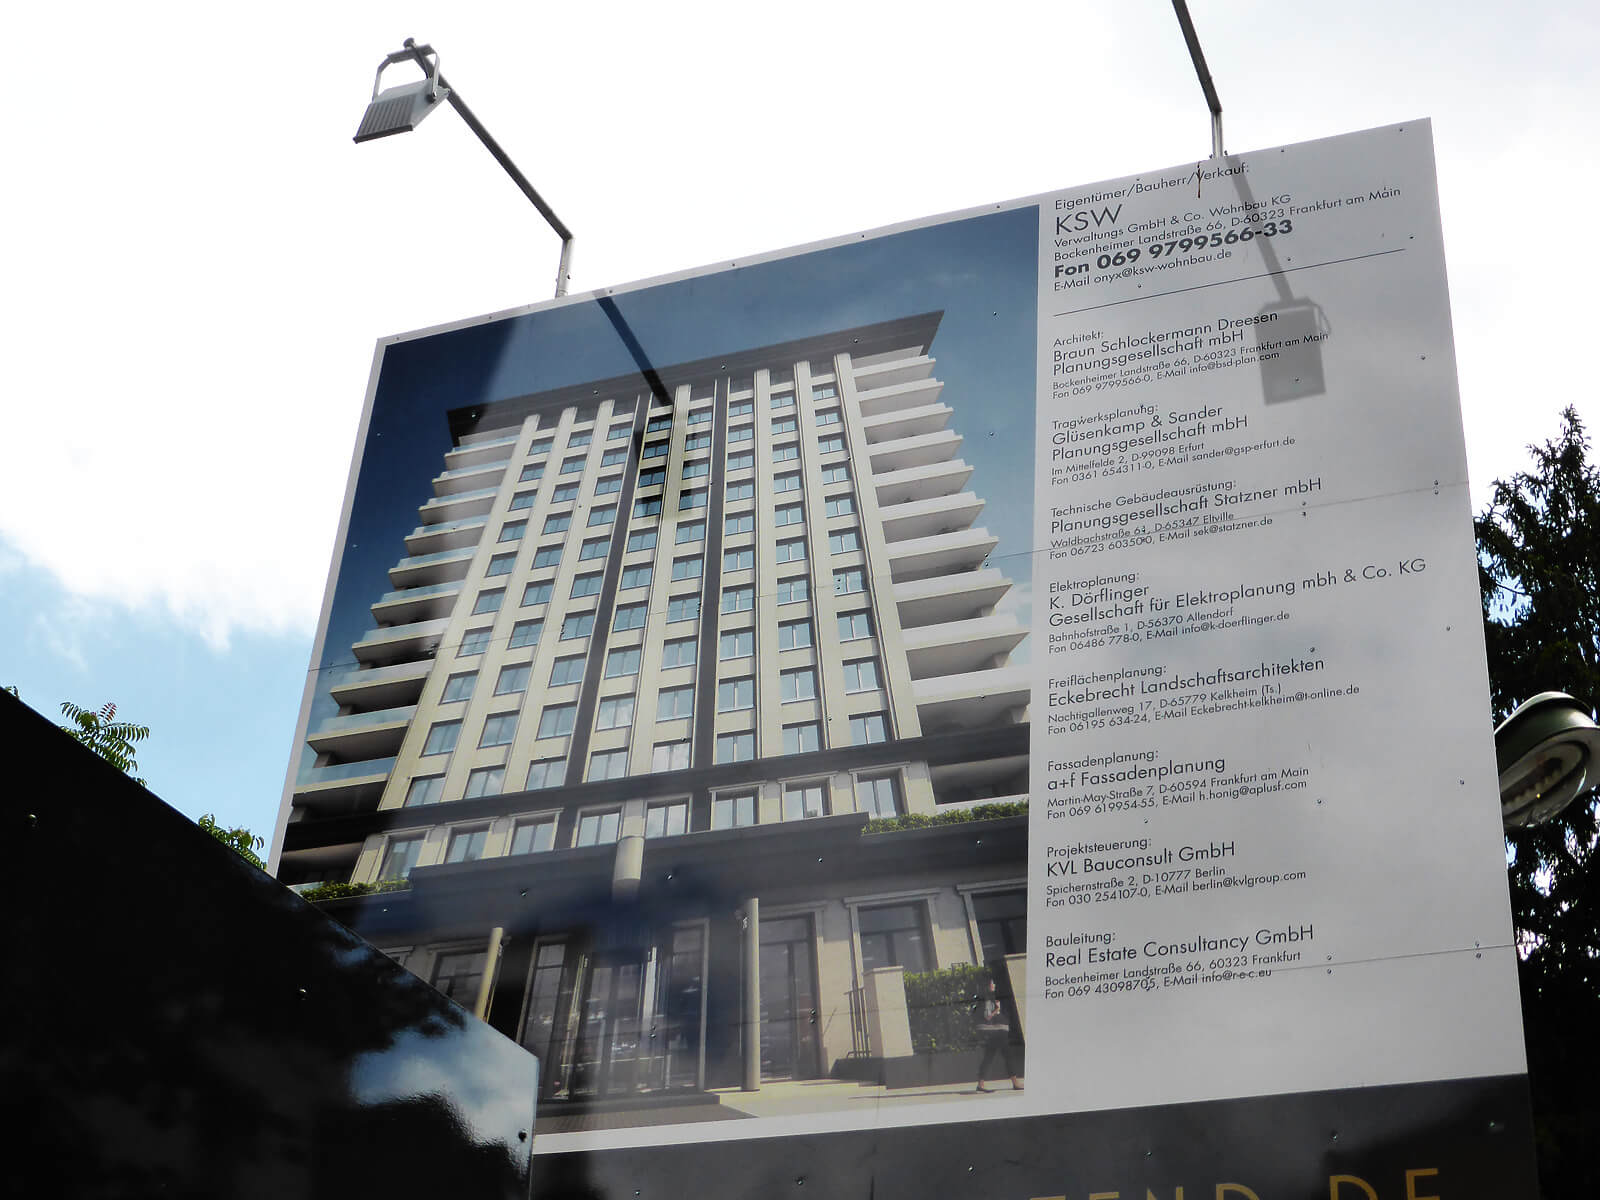 Construction works suspended at Onyx high-rise